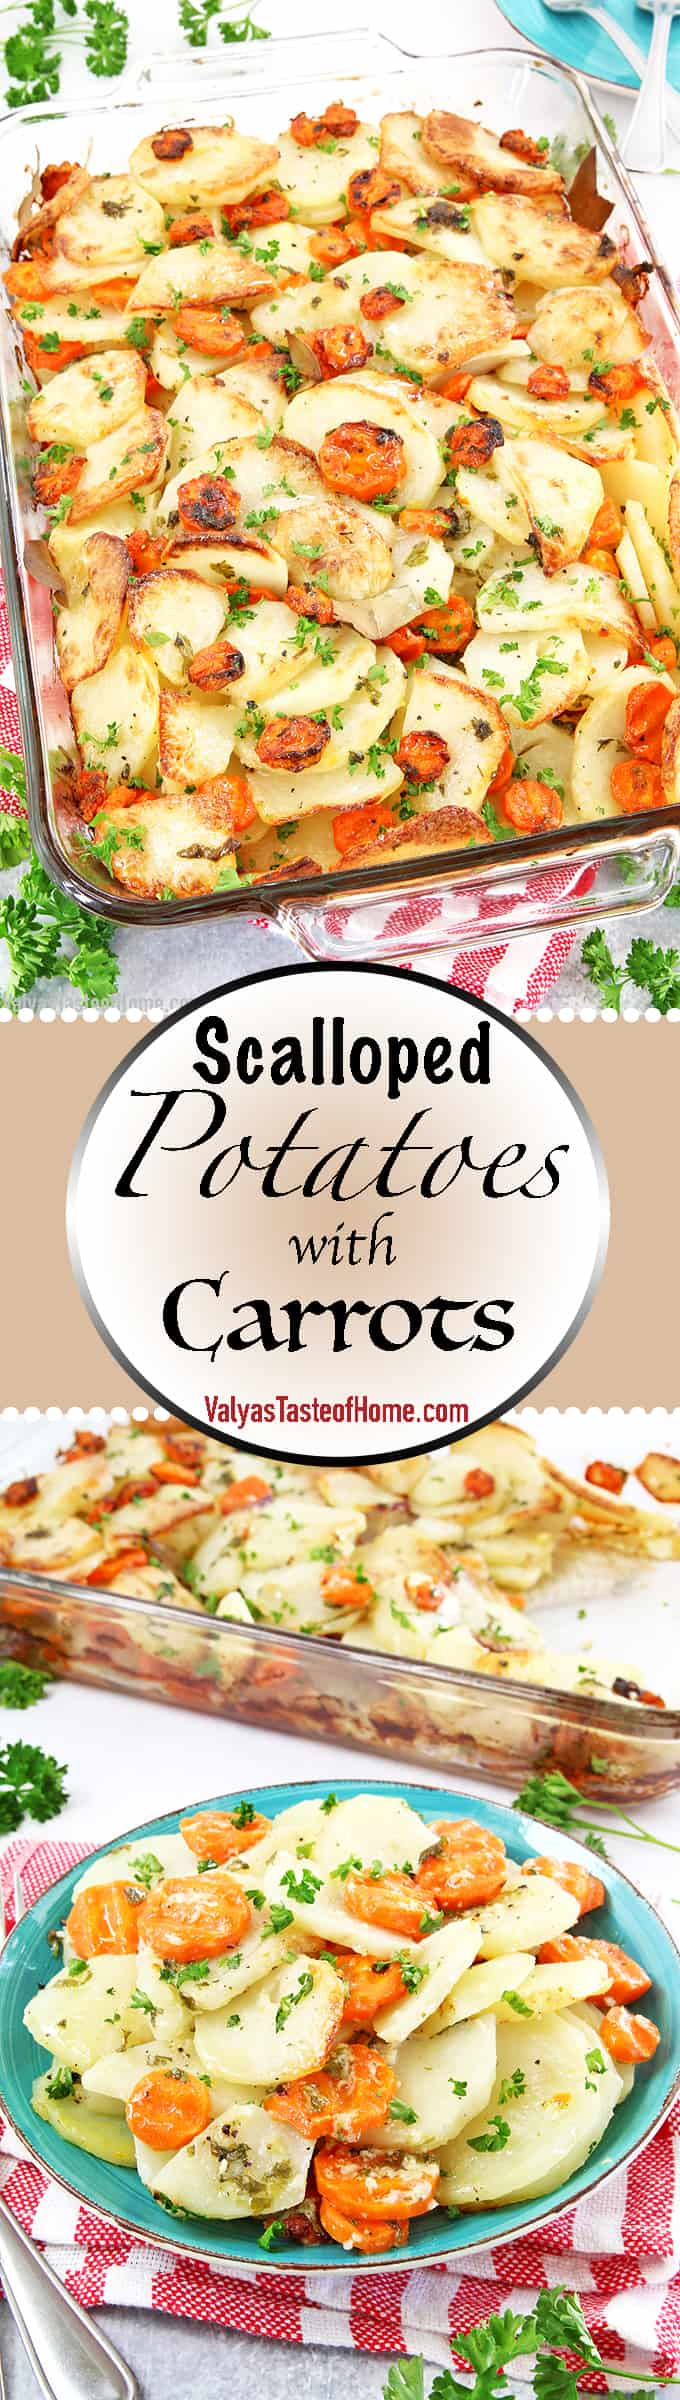 For the love... of potatoes! Scalloped potatoes feature thinly sliced potatoes baked in the oven. This Scalloped Potatoes with Carrots recipe is my modified lighter, quicker version that we make for weeknight dinners. But it also suits the holiday table as well.